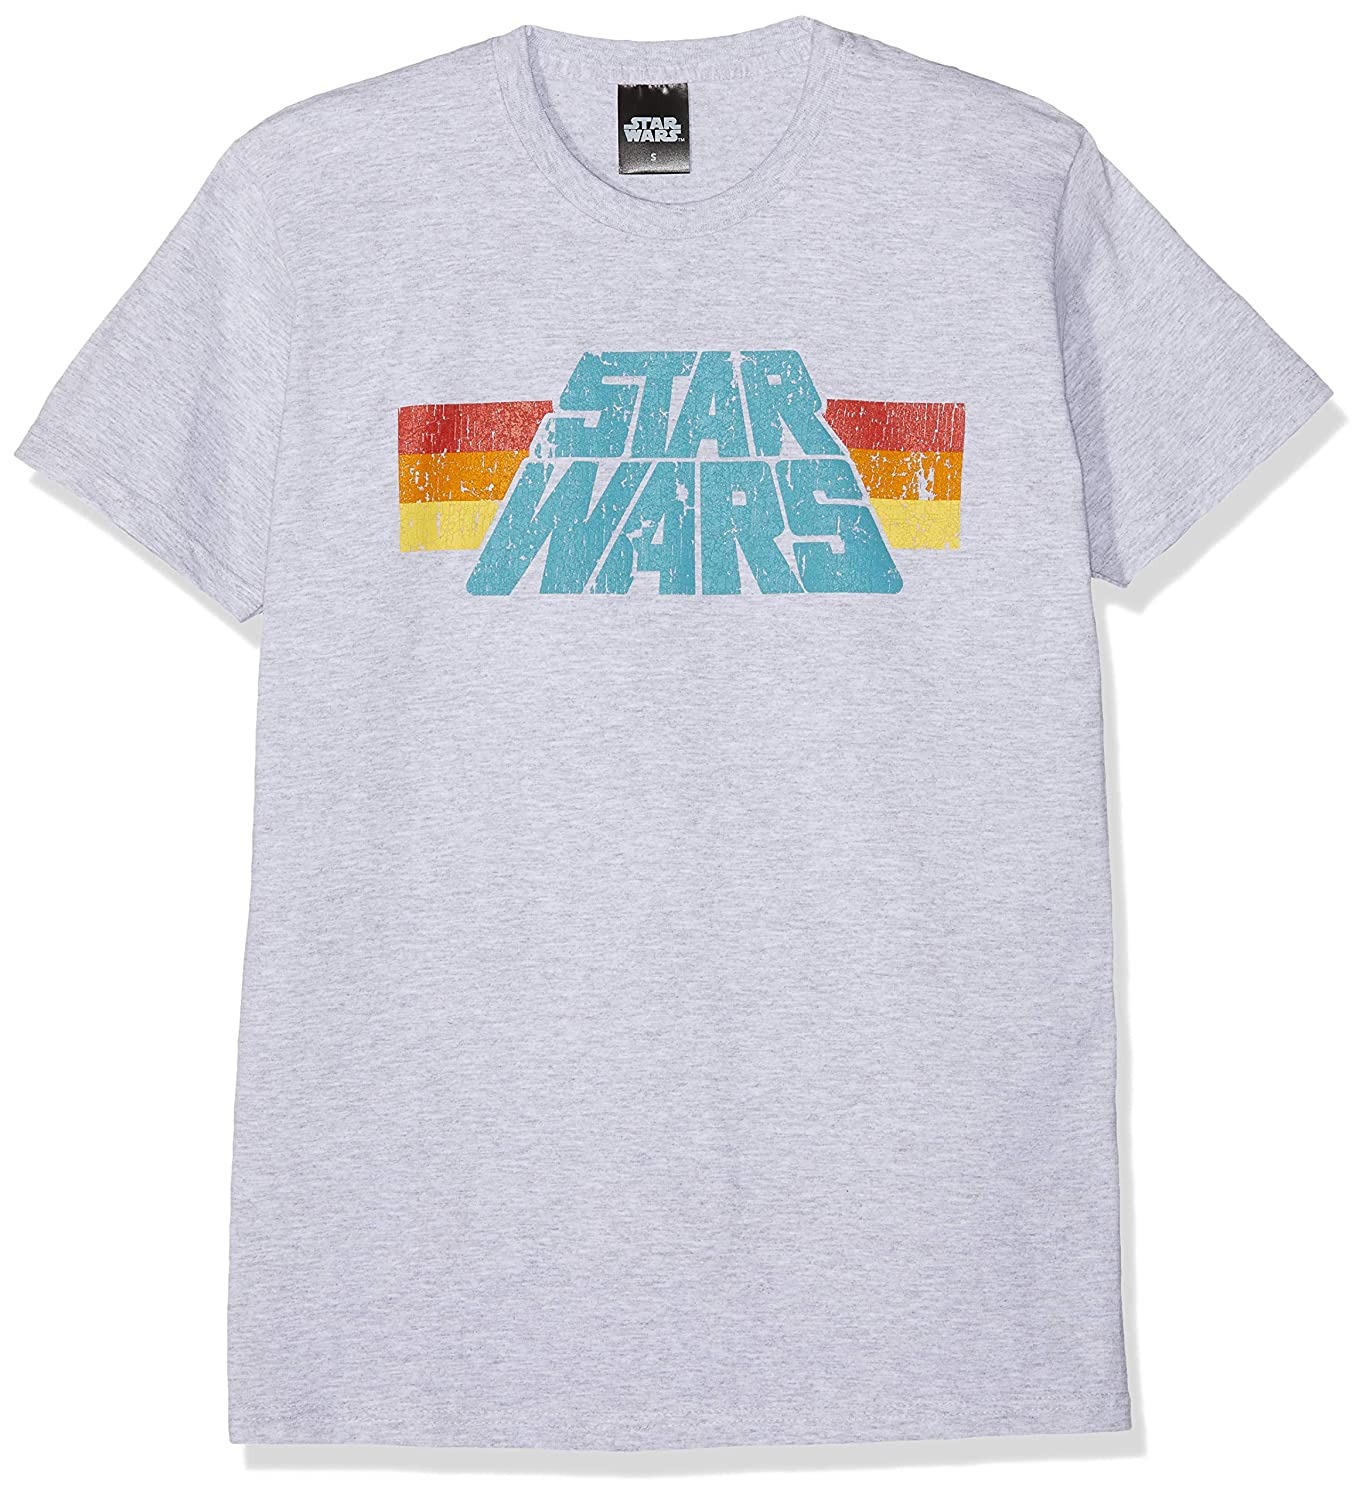 d97fcb69b Star Wars Vintage 77 T-Shirt Mottled Grey: Amazon.co.uk: Clothing